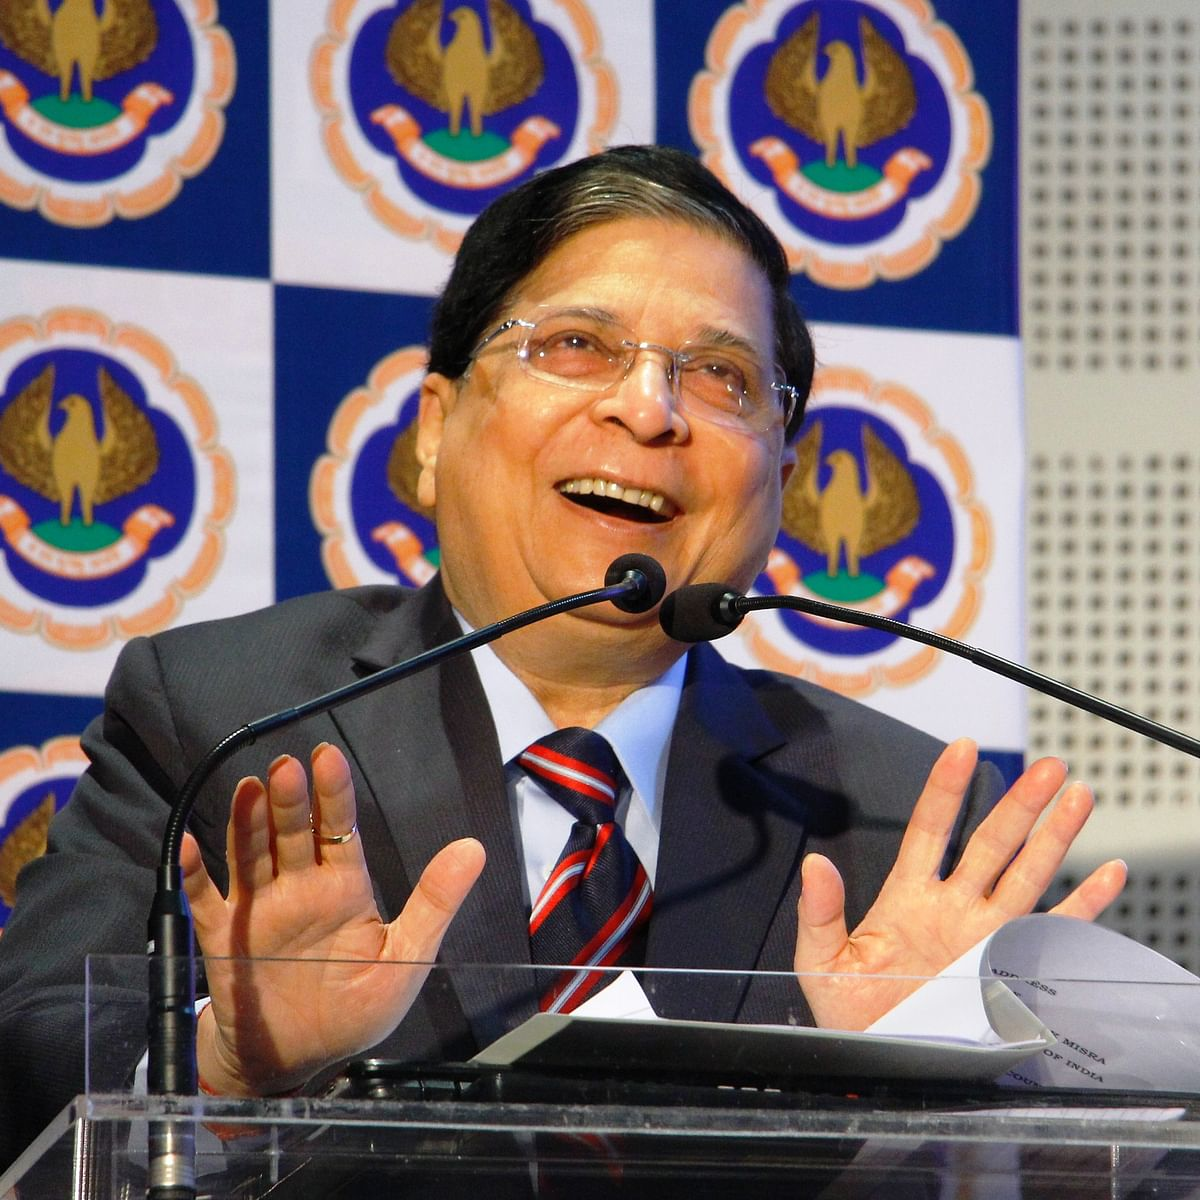 Trust deficit means bad economy, CAs need to be accurate: Ex-CJI Dipak Misra